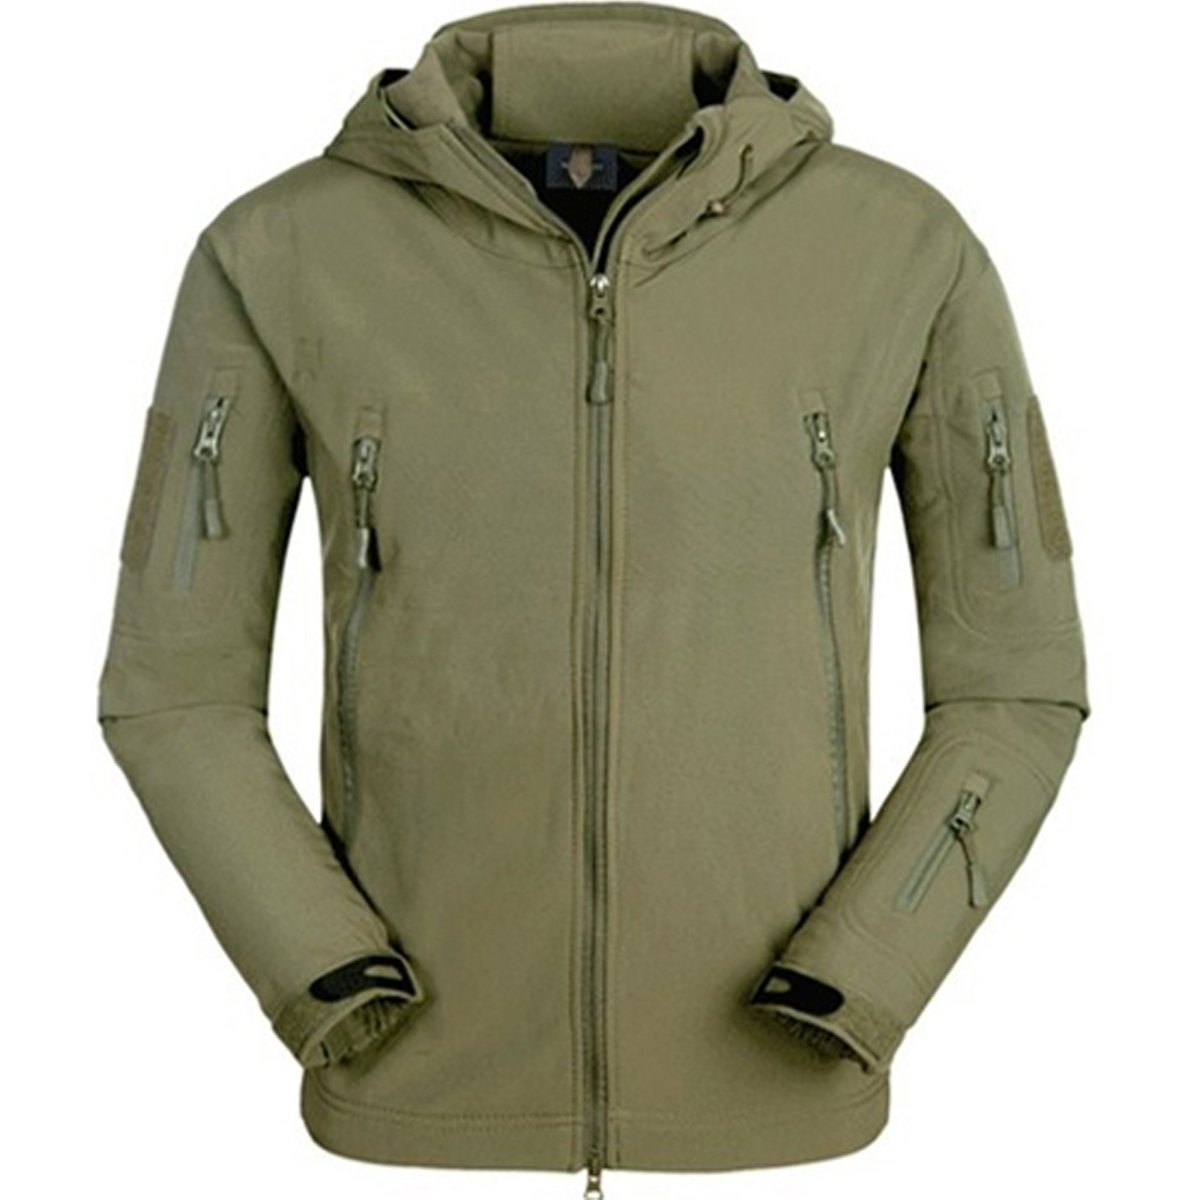 Eglemall Men's Outdoor Hunting Soft Shell Waterproof Tactical Fleece Jackets (Small, Green) by Eglemall